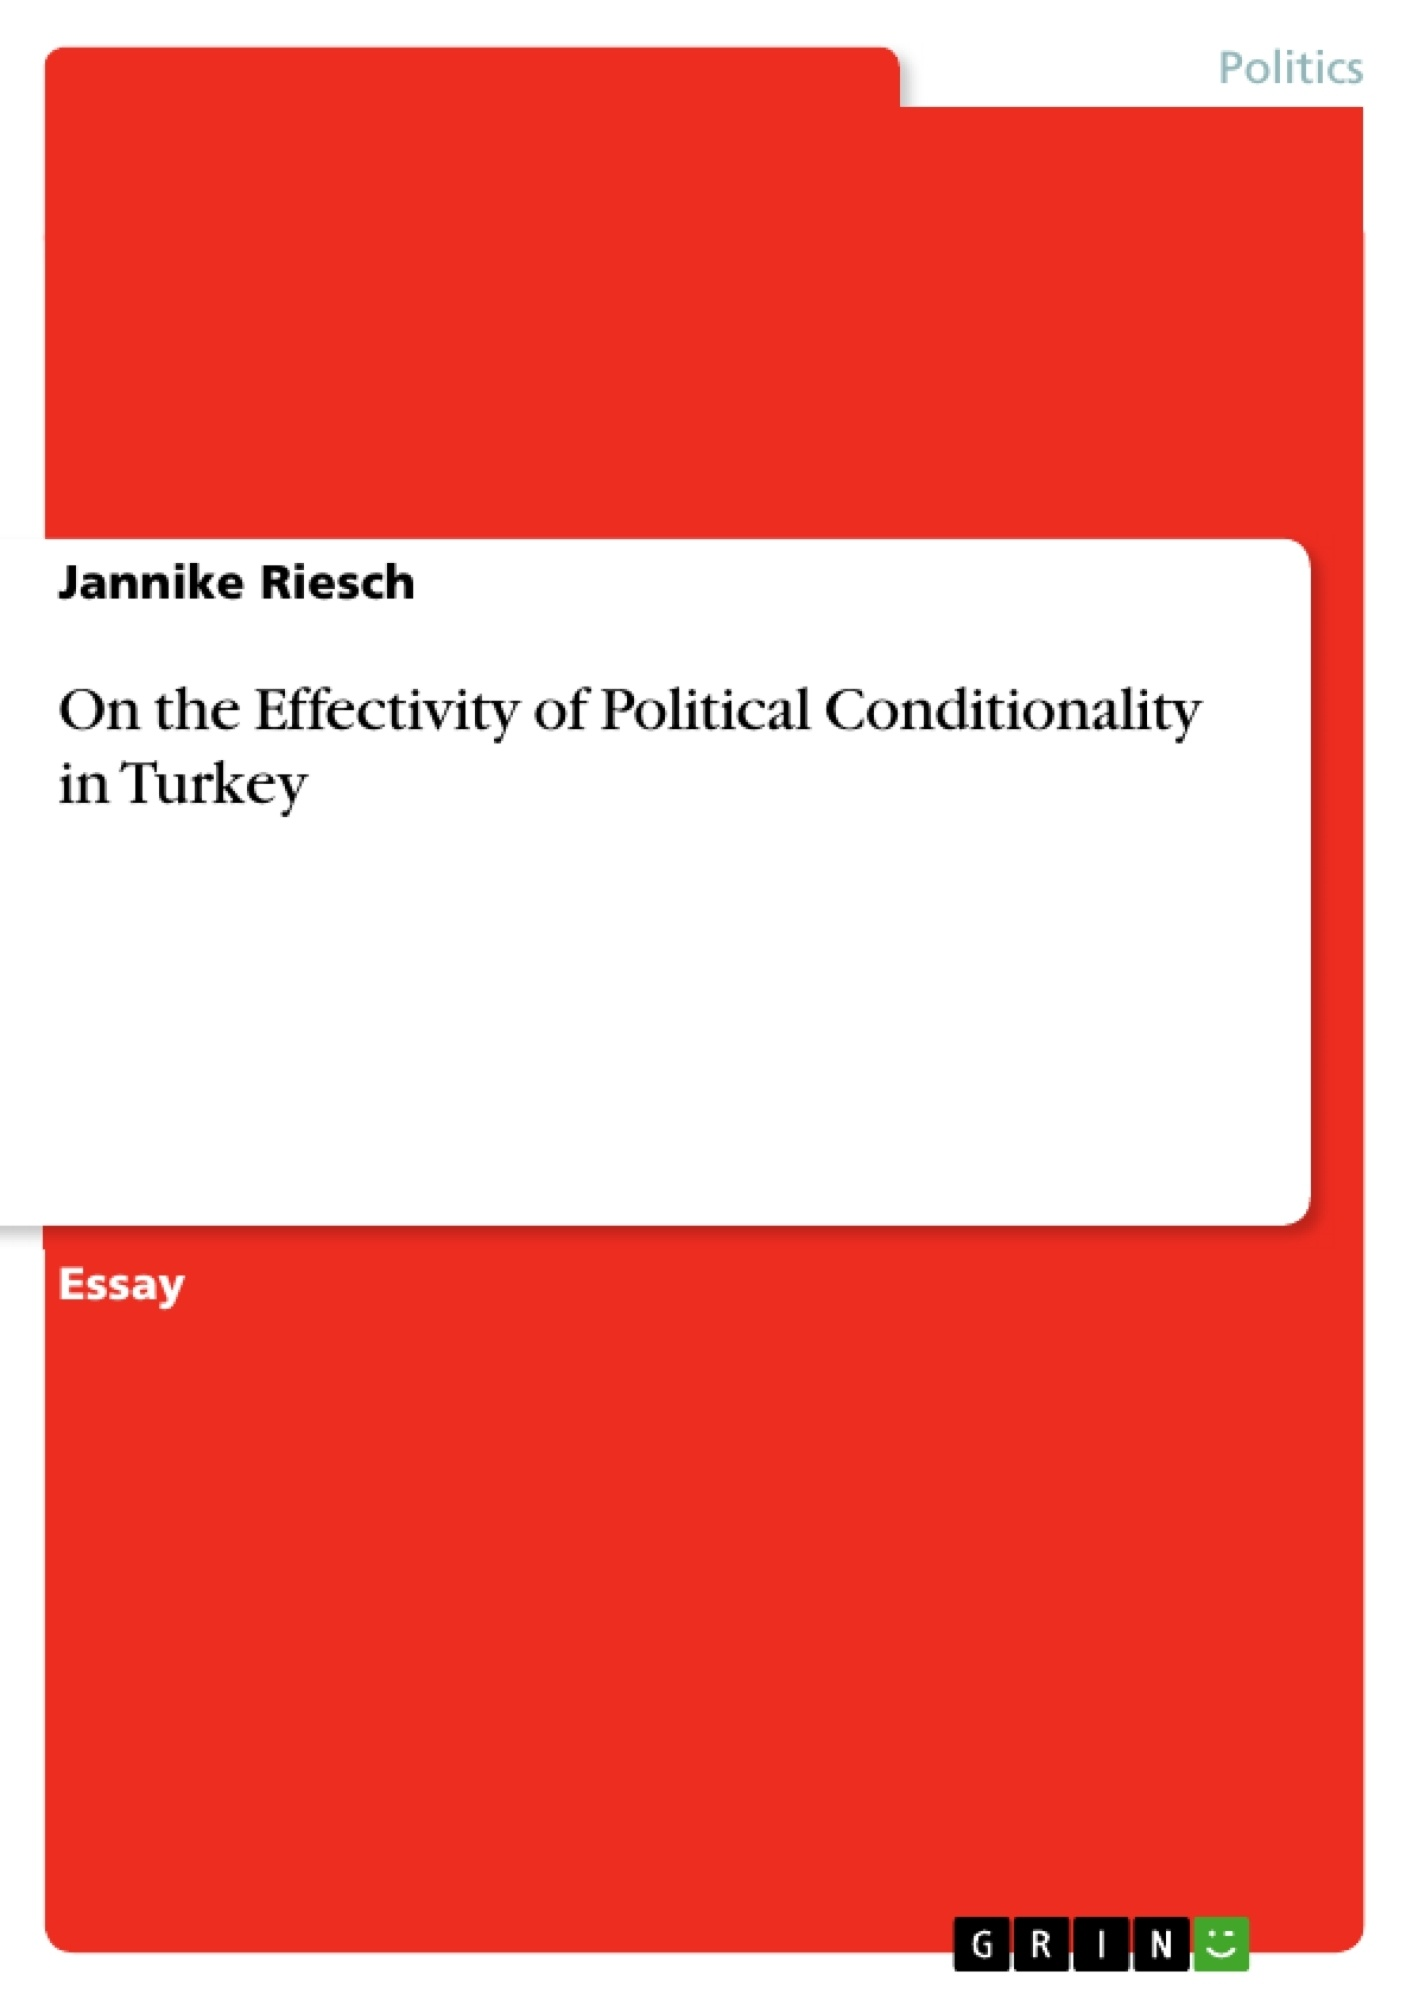 Title: On the Effectivity of Political Conditionality in Turkey